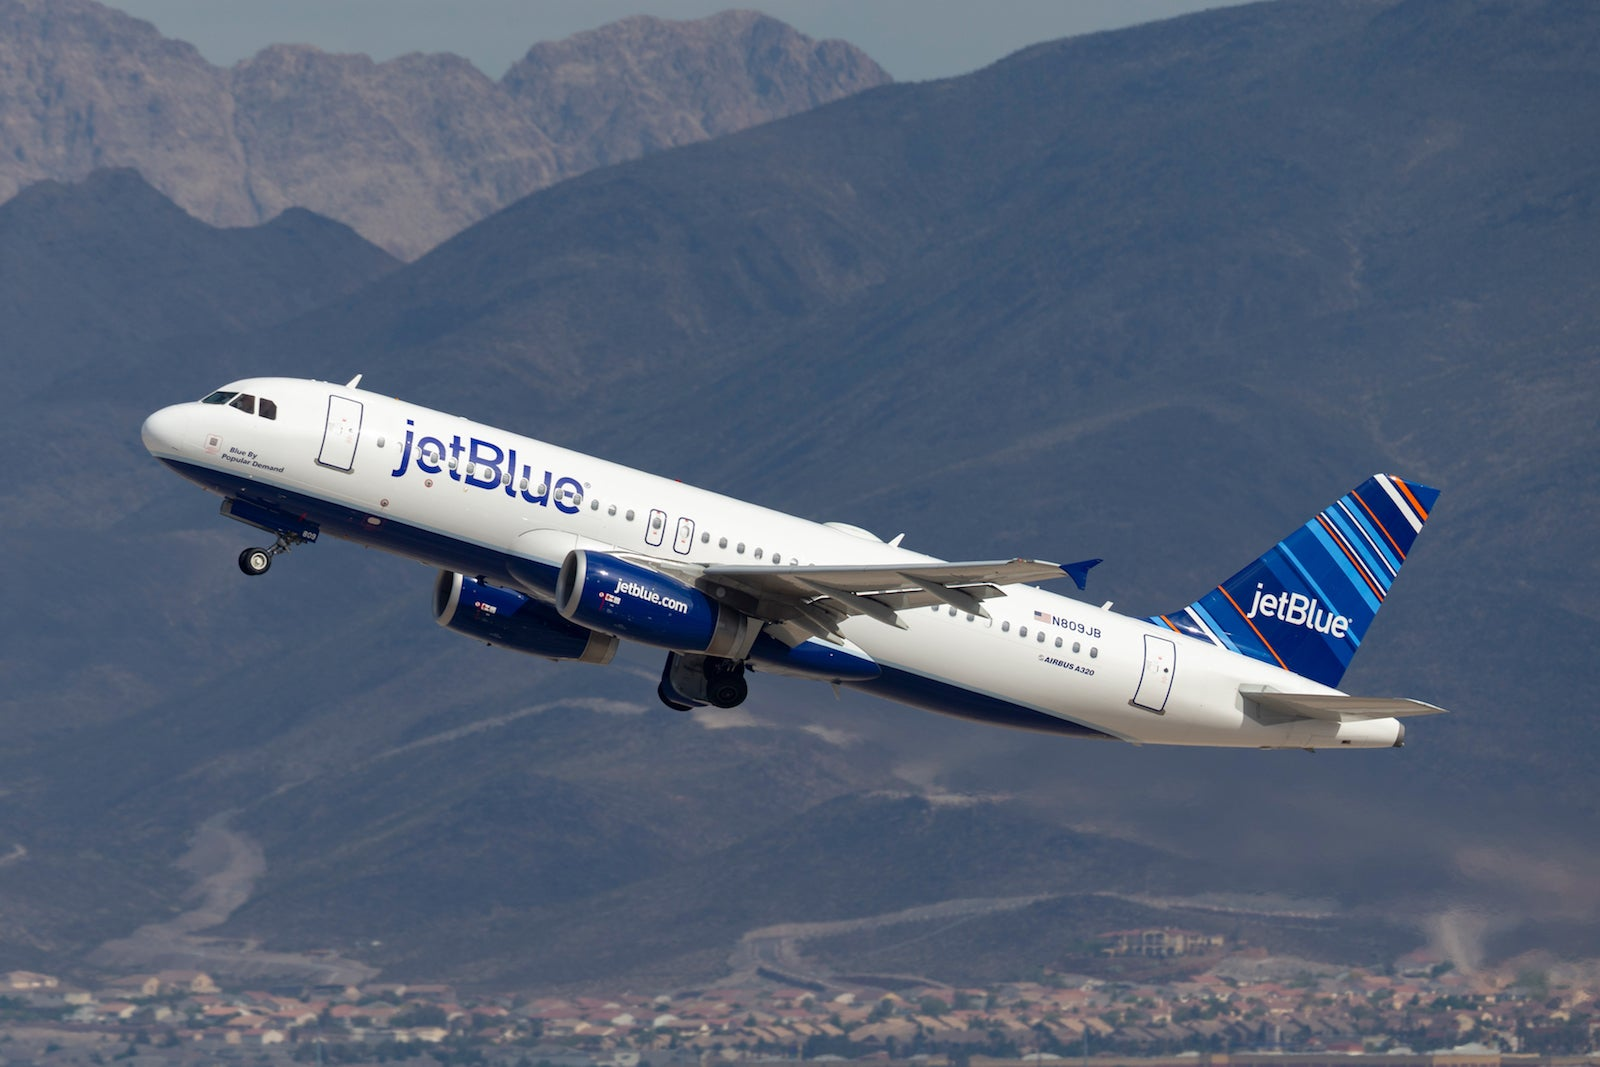 Cyber Monday JetBlue sale — $39 flights